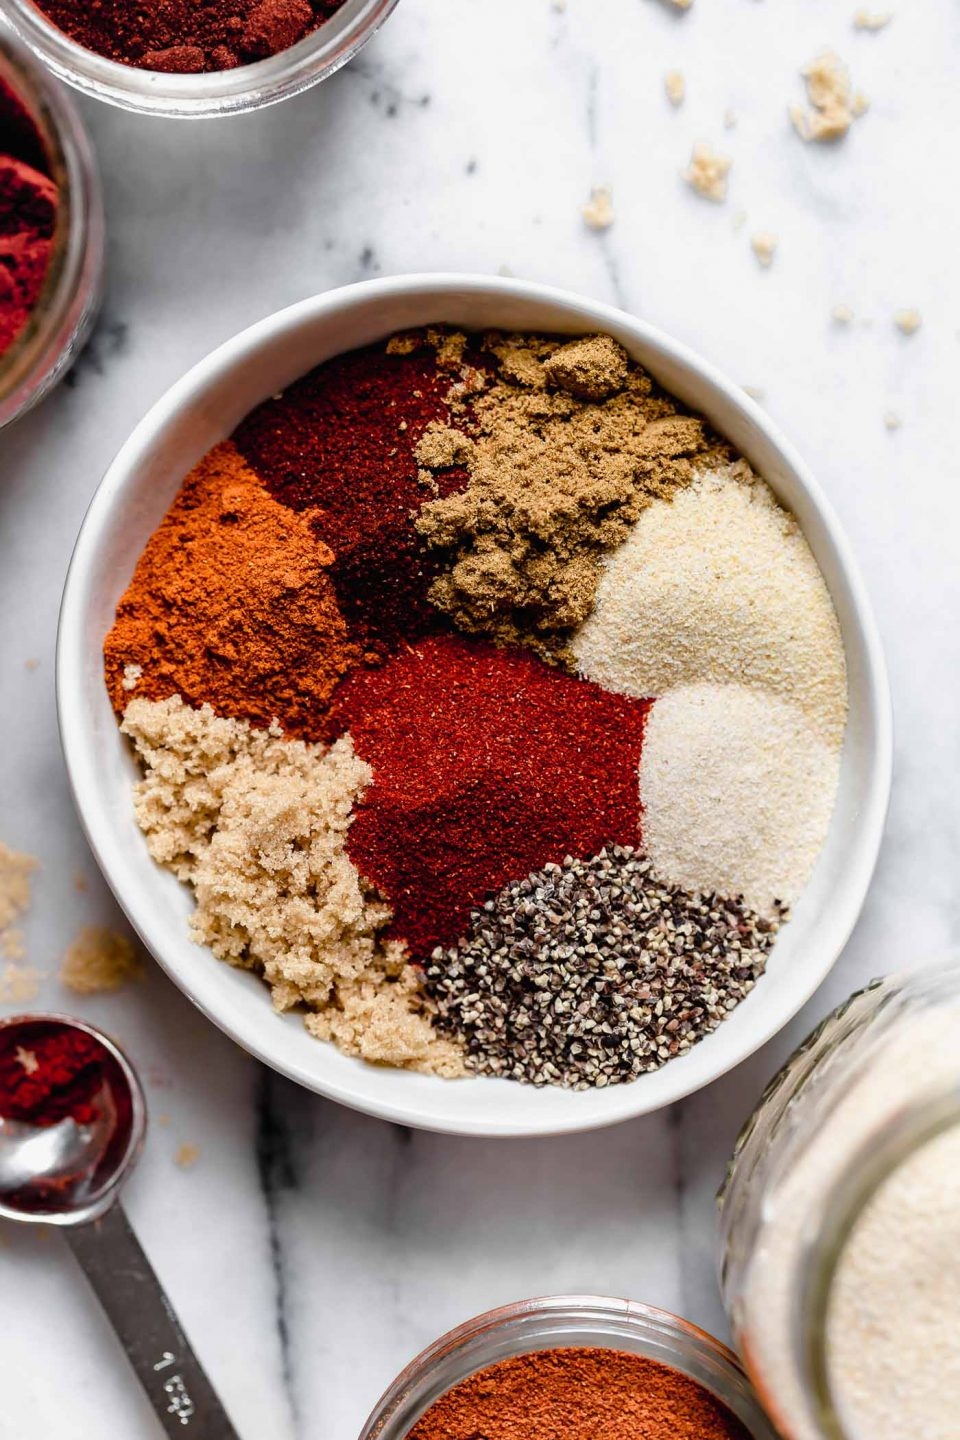 Ingredients for dry rub for baby back ribs shown in a small white bowl. Brown sugar, chili powder, cumin, onion powder, garlic powder, paprika, etc. The dry rub bowl is shown on a marble surface, next to a small measuring spoon & some larger jars of spices.